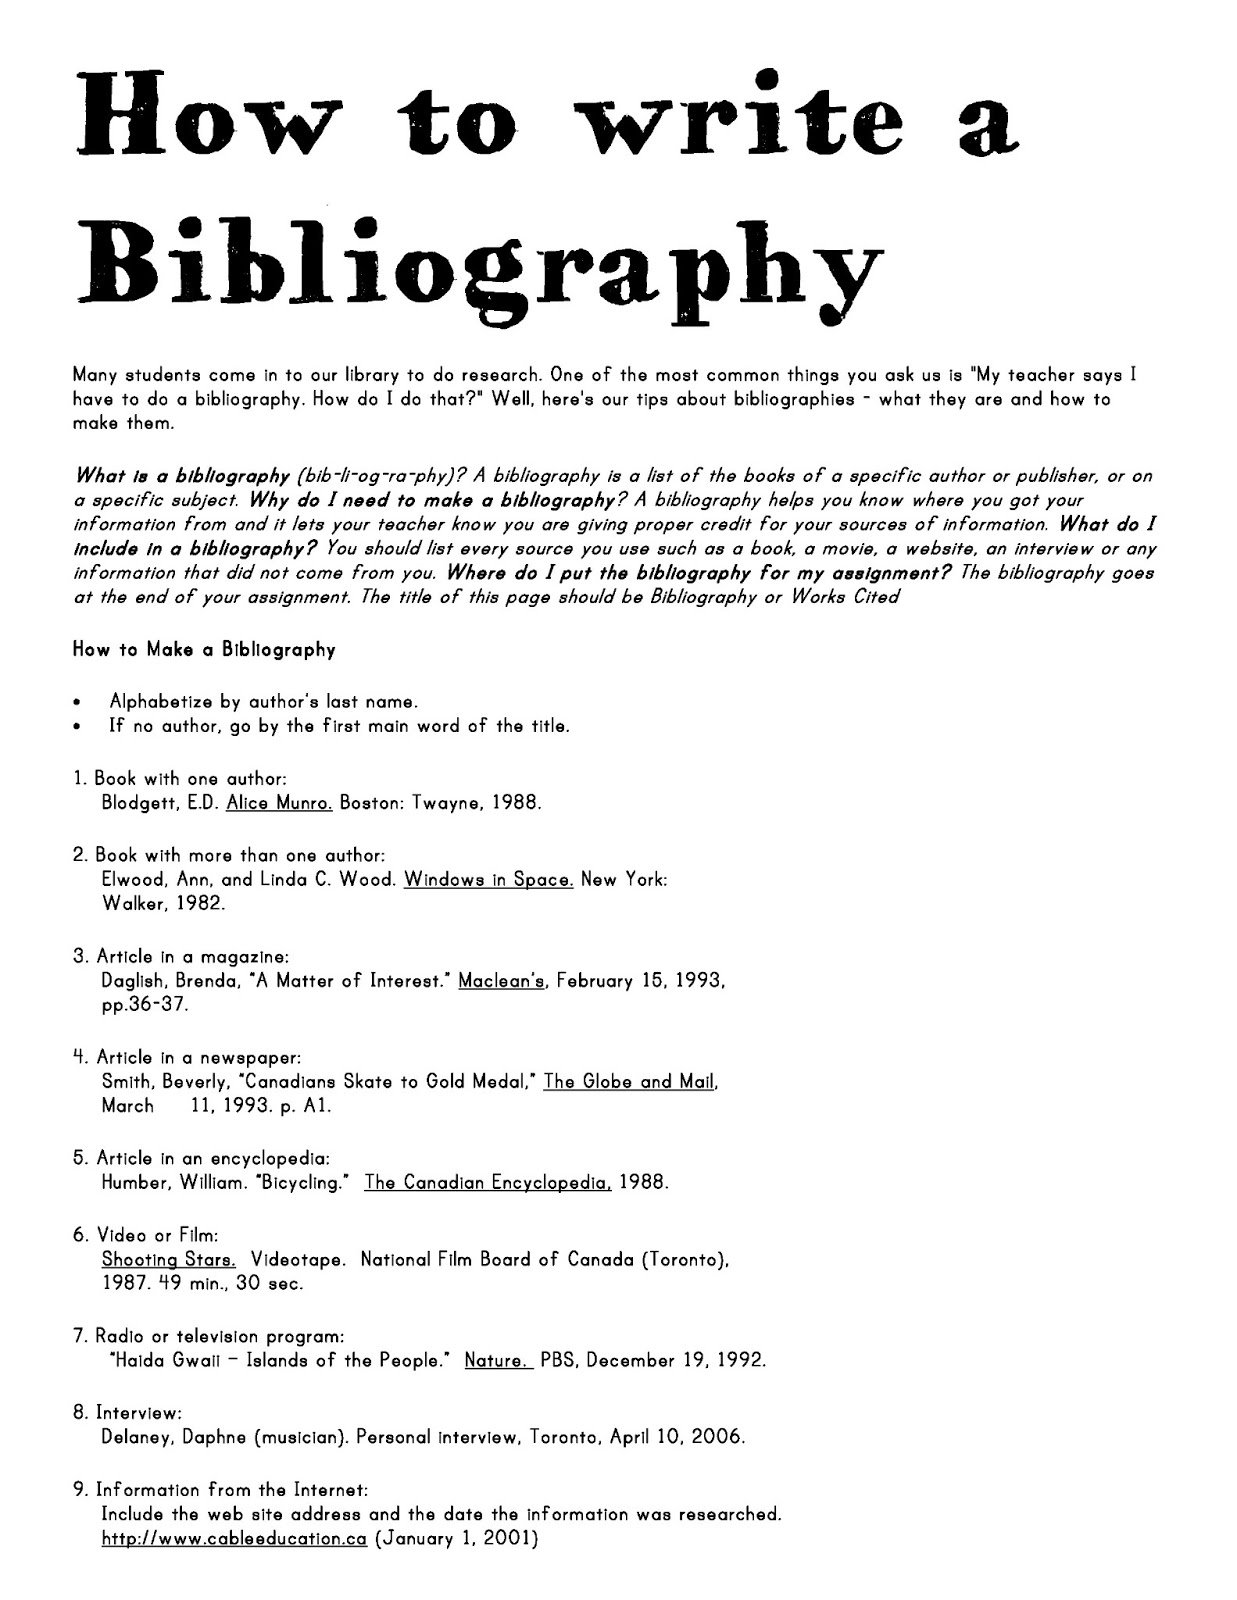 how to write a bibliography for a book and website